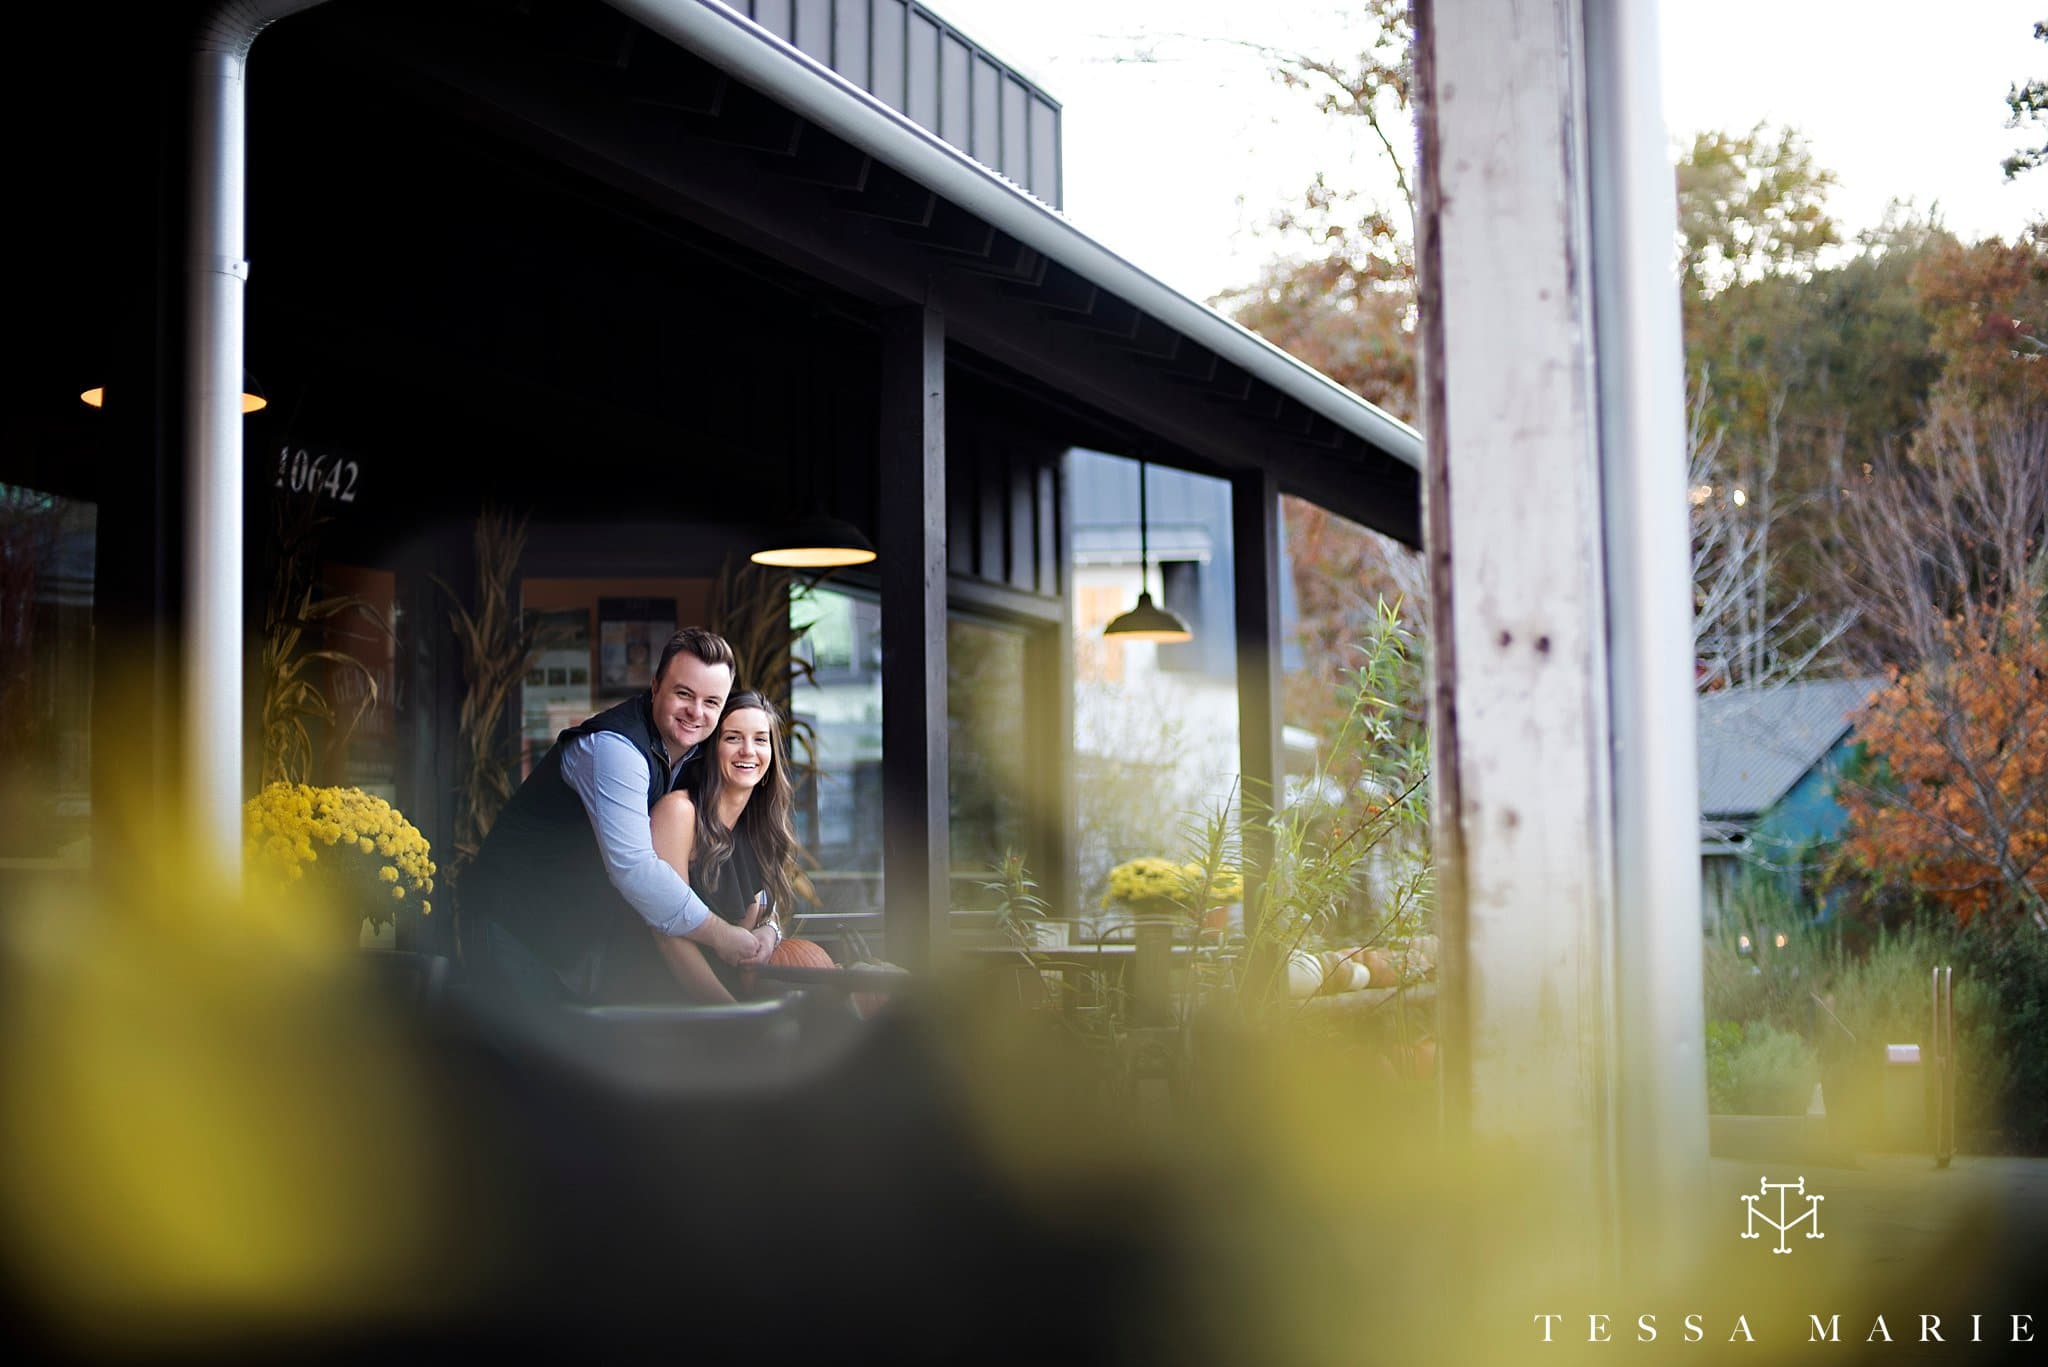 tessa_marie_weddings_serenbe_engagement_session_0017.jpg